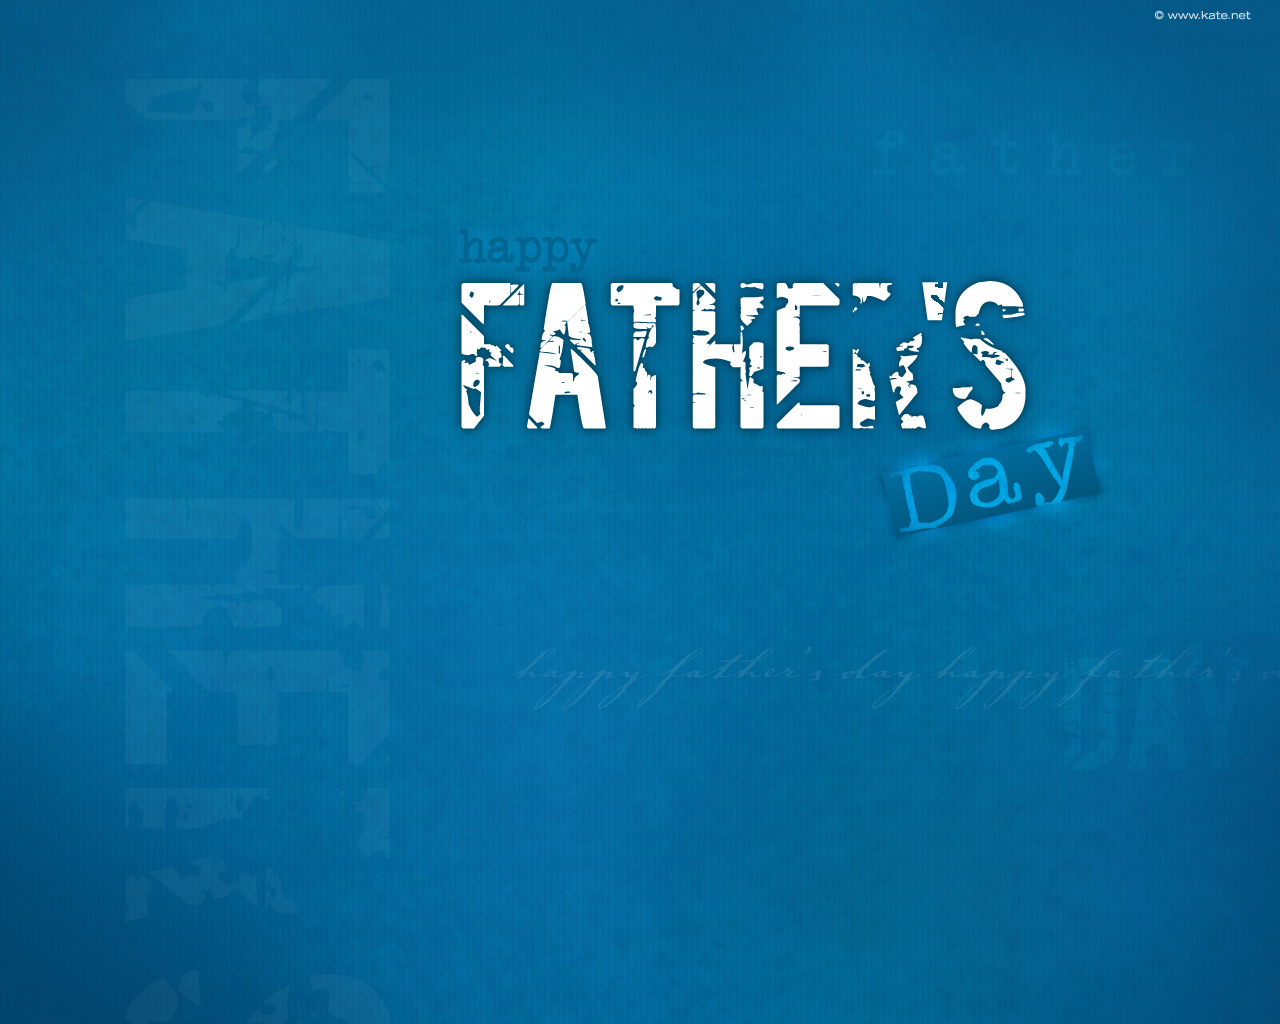 father u0026 39 s day wallpapers by kate net